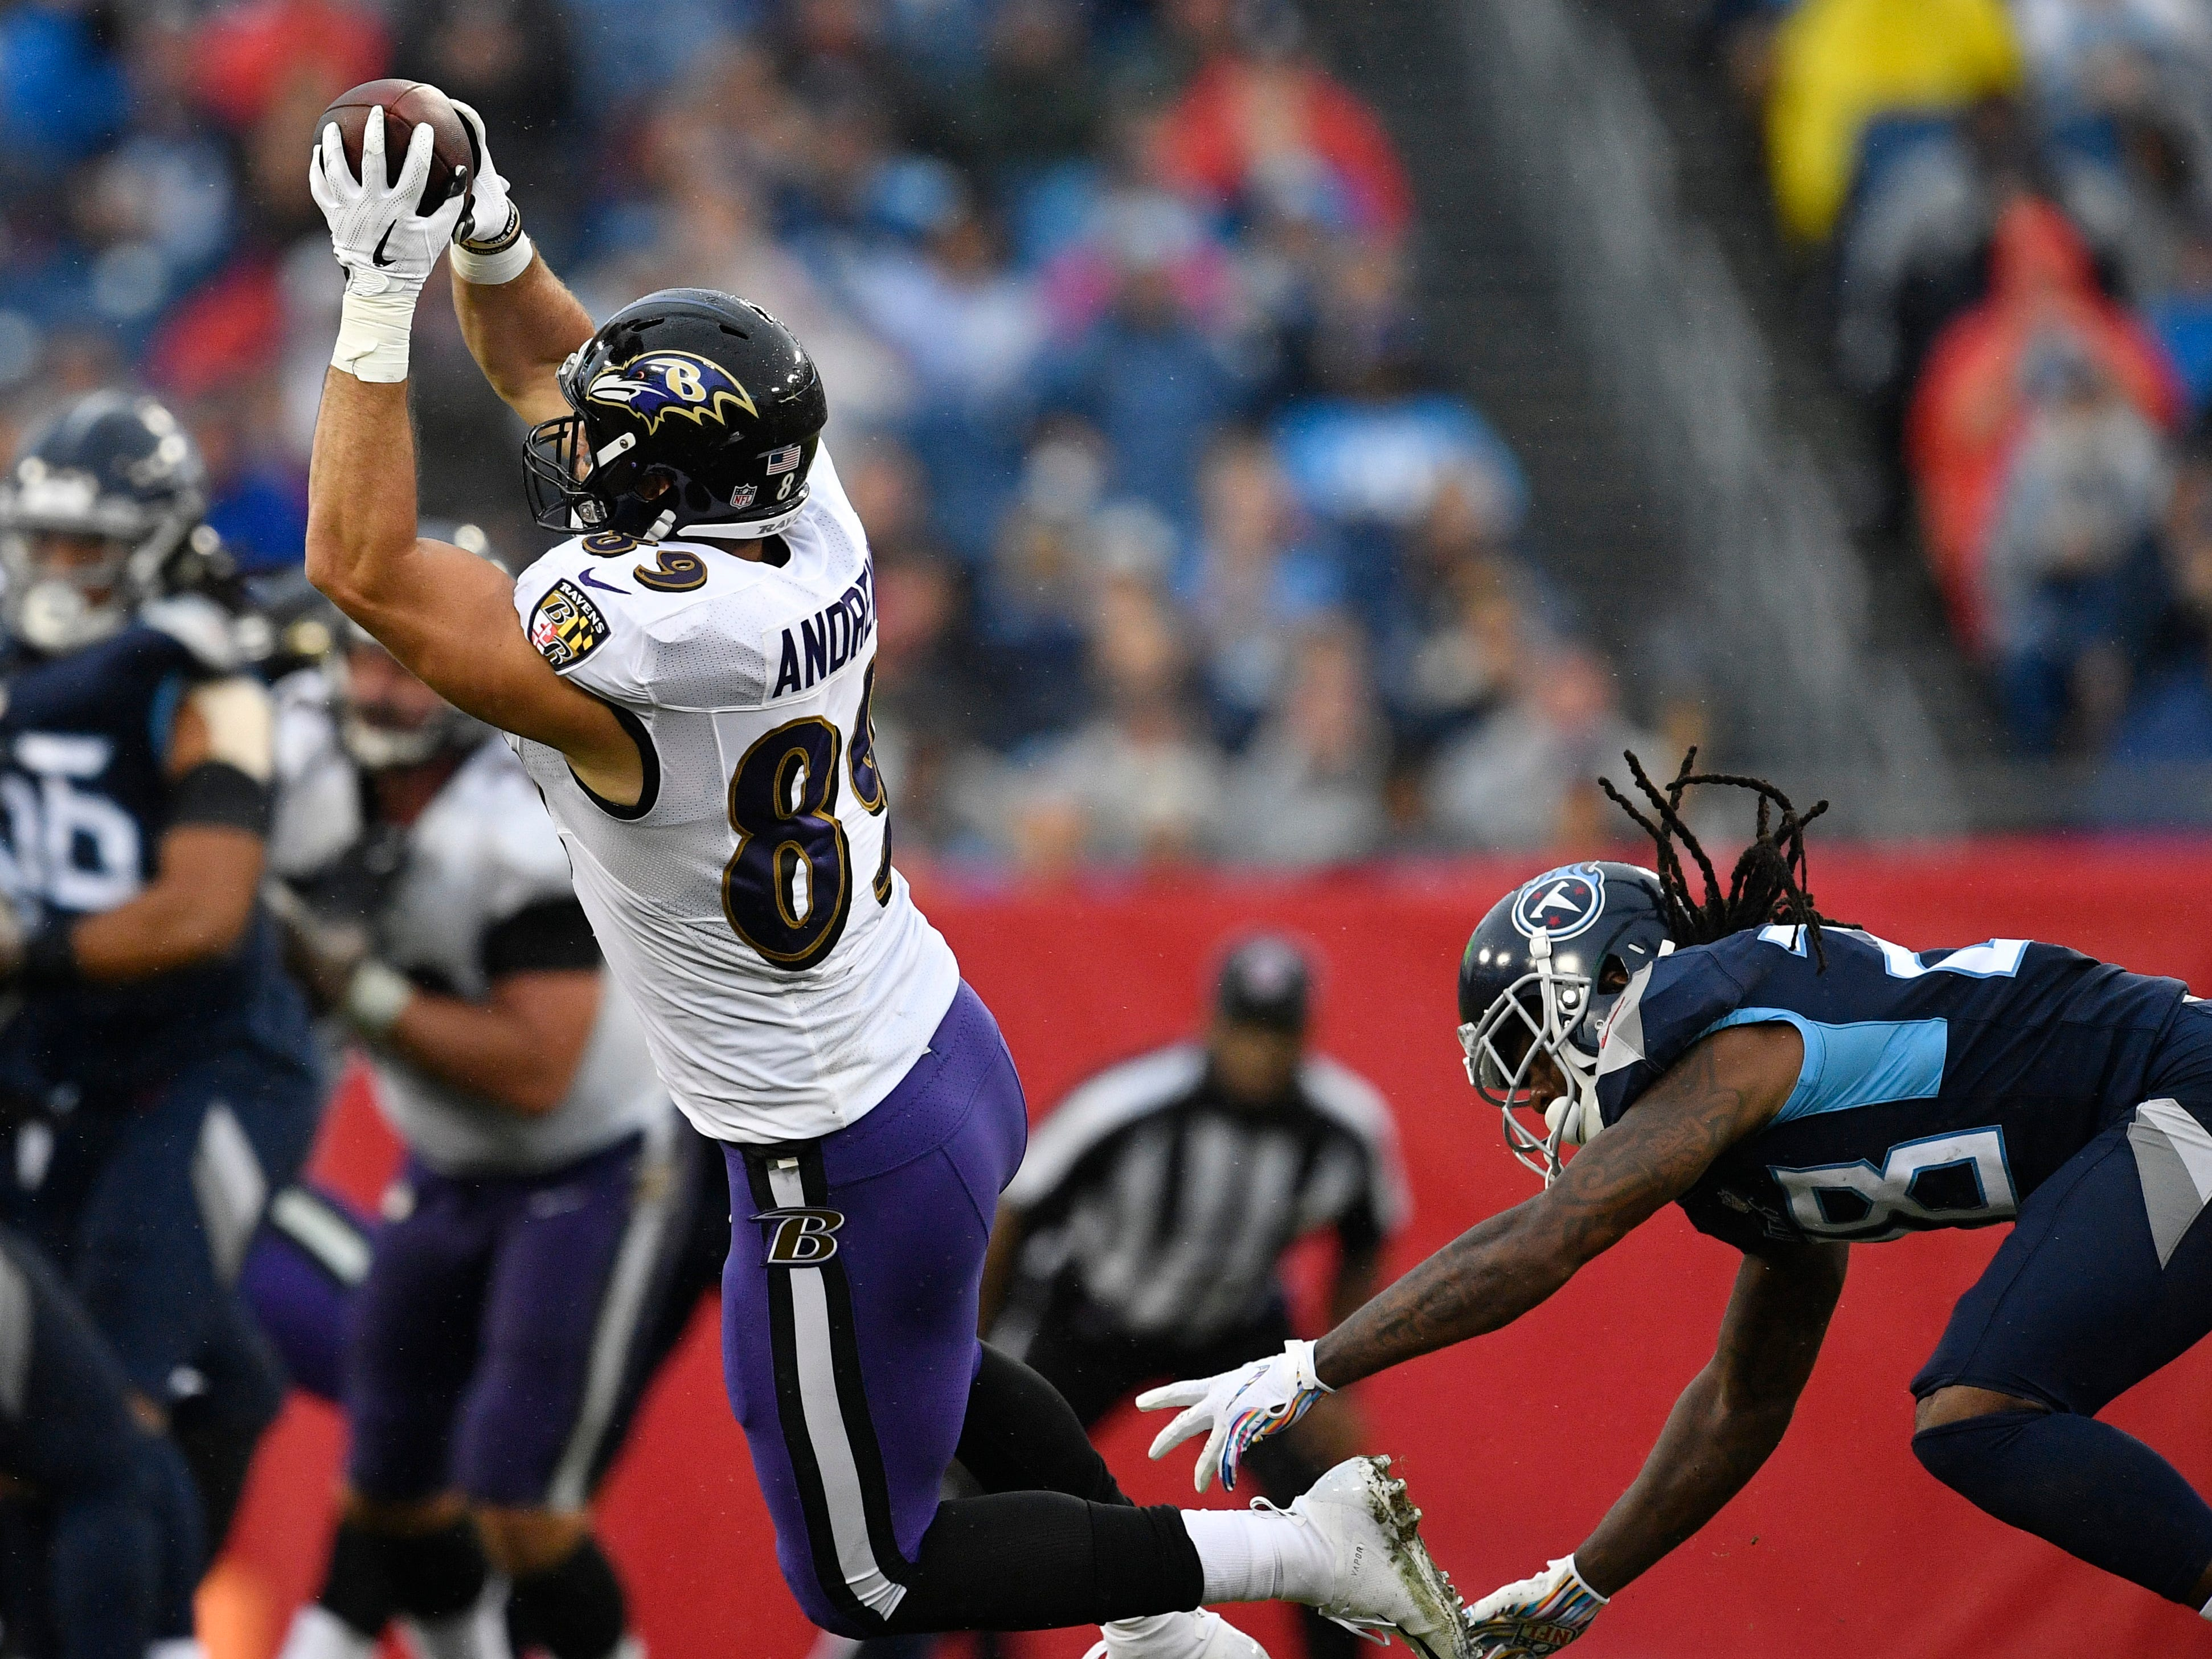 Ravens tight end Mark Andrews (89) hauls in a catch defended by Titans defensive back Kendrick Lewis (28) in the second quarter at Nissan Stadium Sunday, Oct. 14, 2018, in Nashville, Tenn.